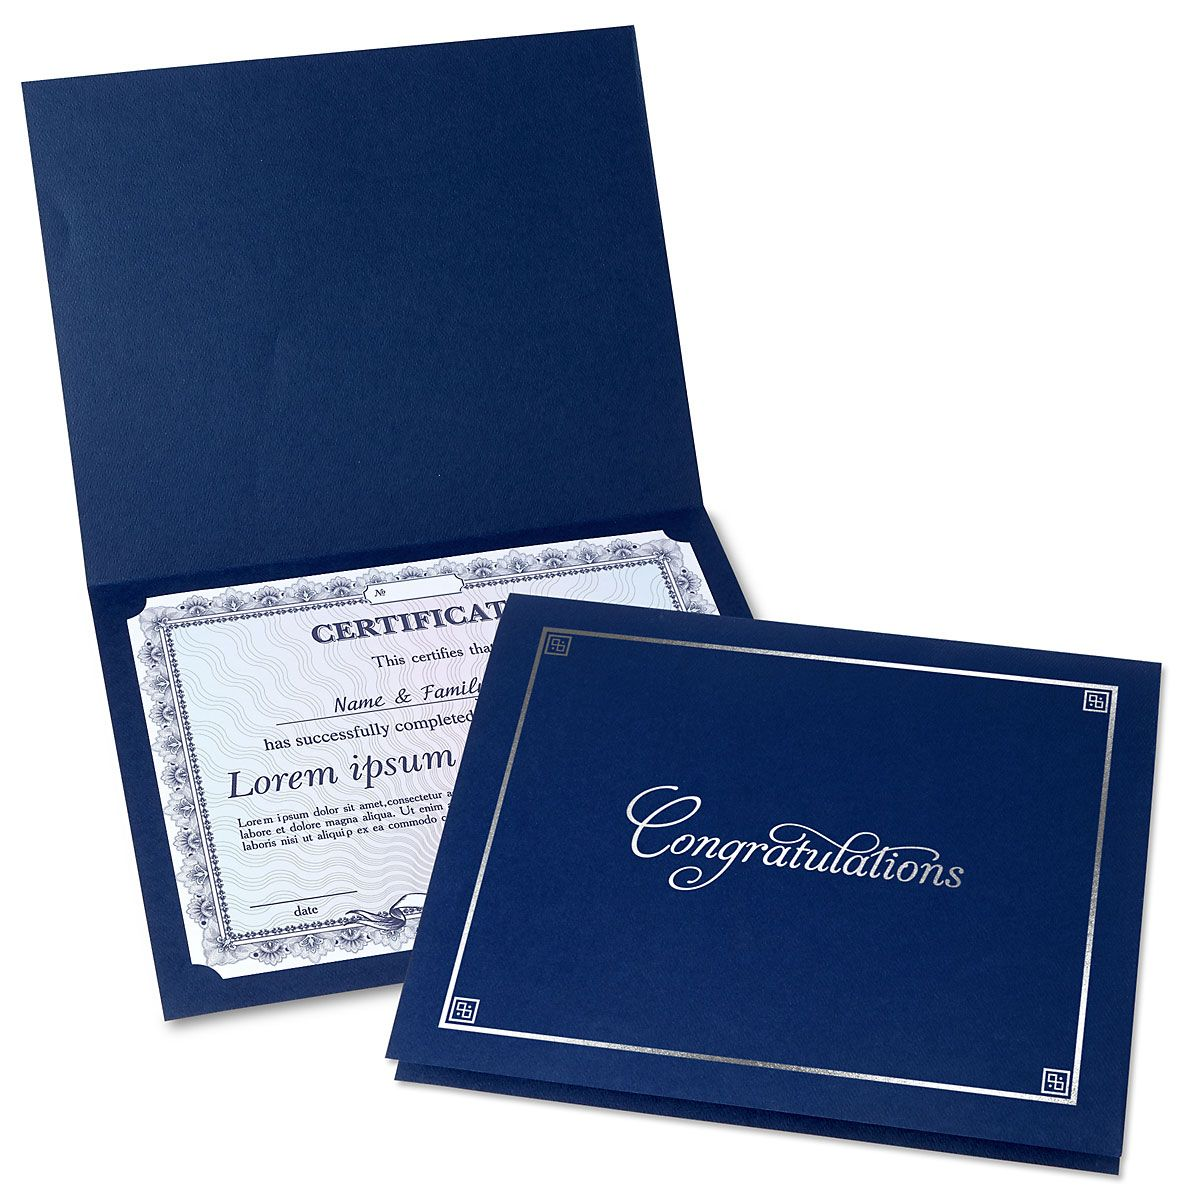 Congratulations Blue Certificate Folder with Silver Border